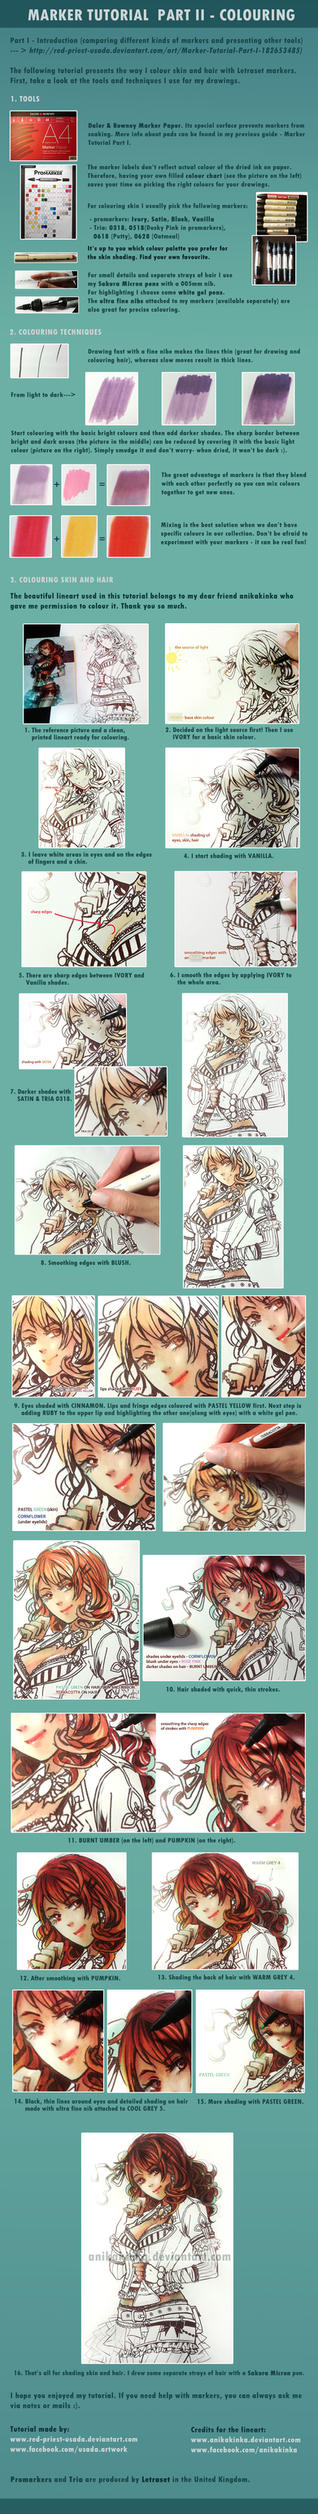 Marker Tutorial Part II - Colouring by Red-Priest-Usada